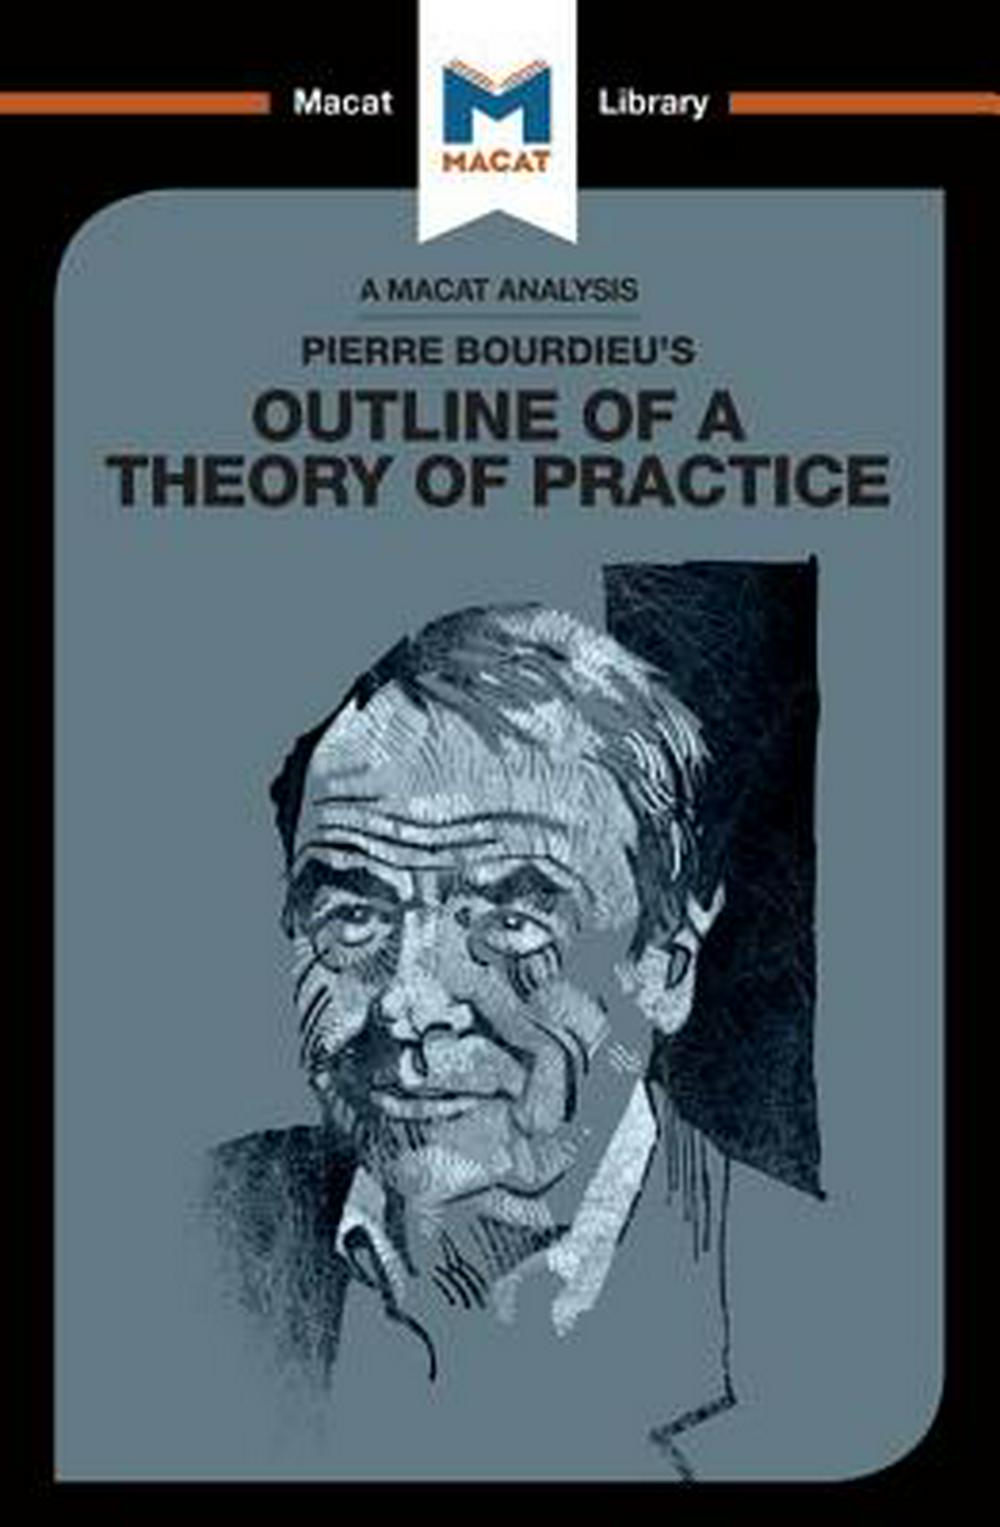 Pierre Bourdieu's Outline of a Theory of Practice (The Macat Library)